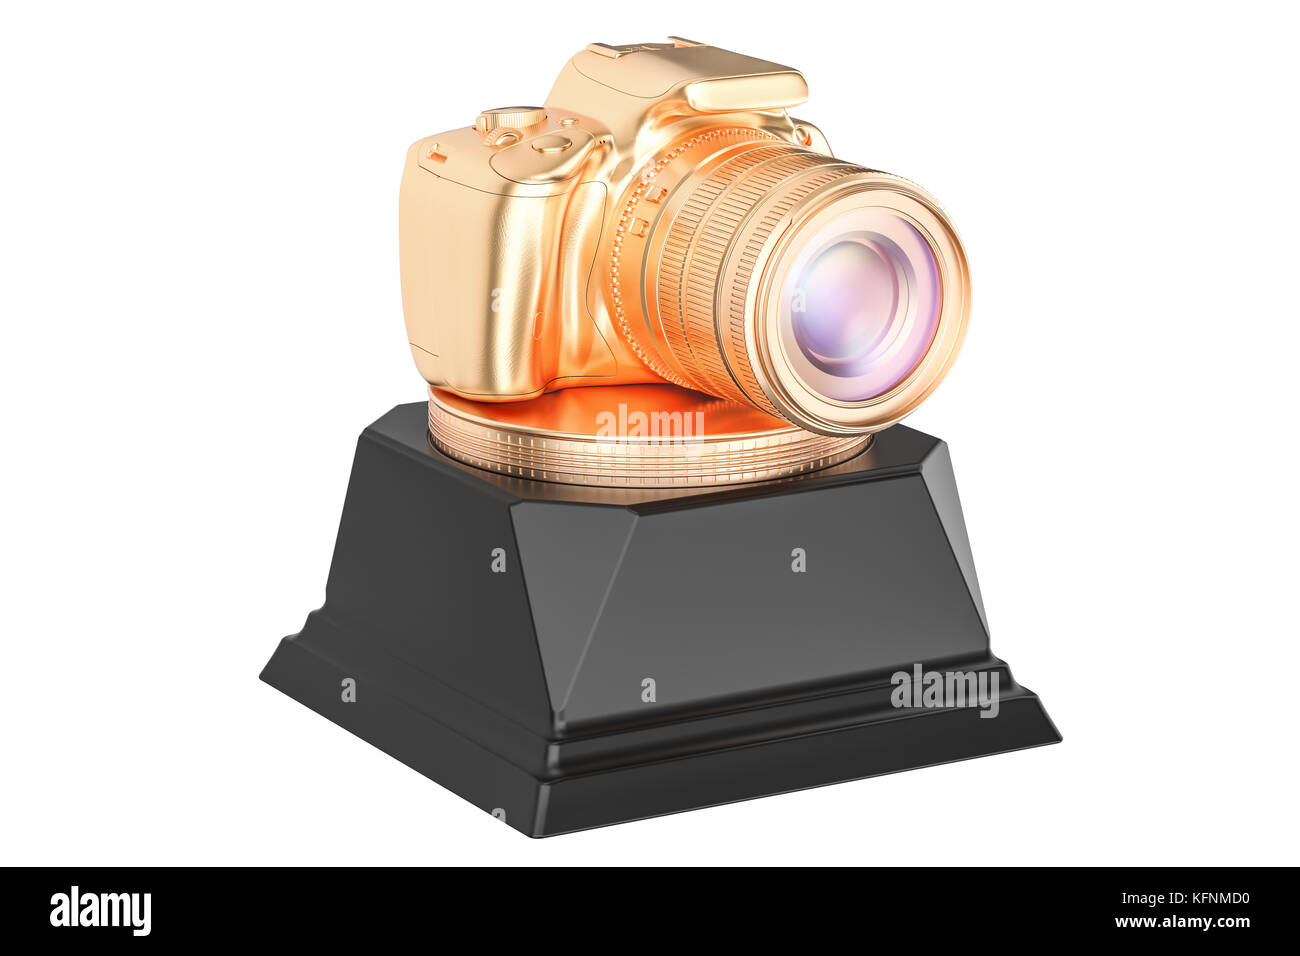 Best Photo or Photographer Golden Award concept. 3D rendering isolated on white background - Stock Image